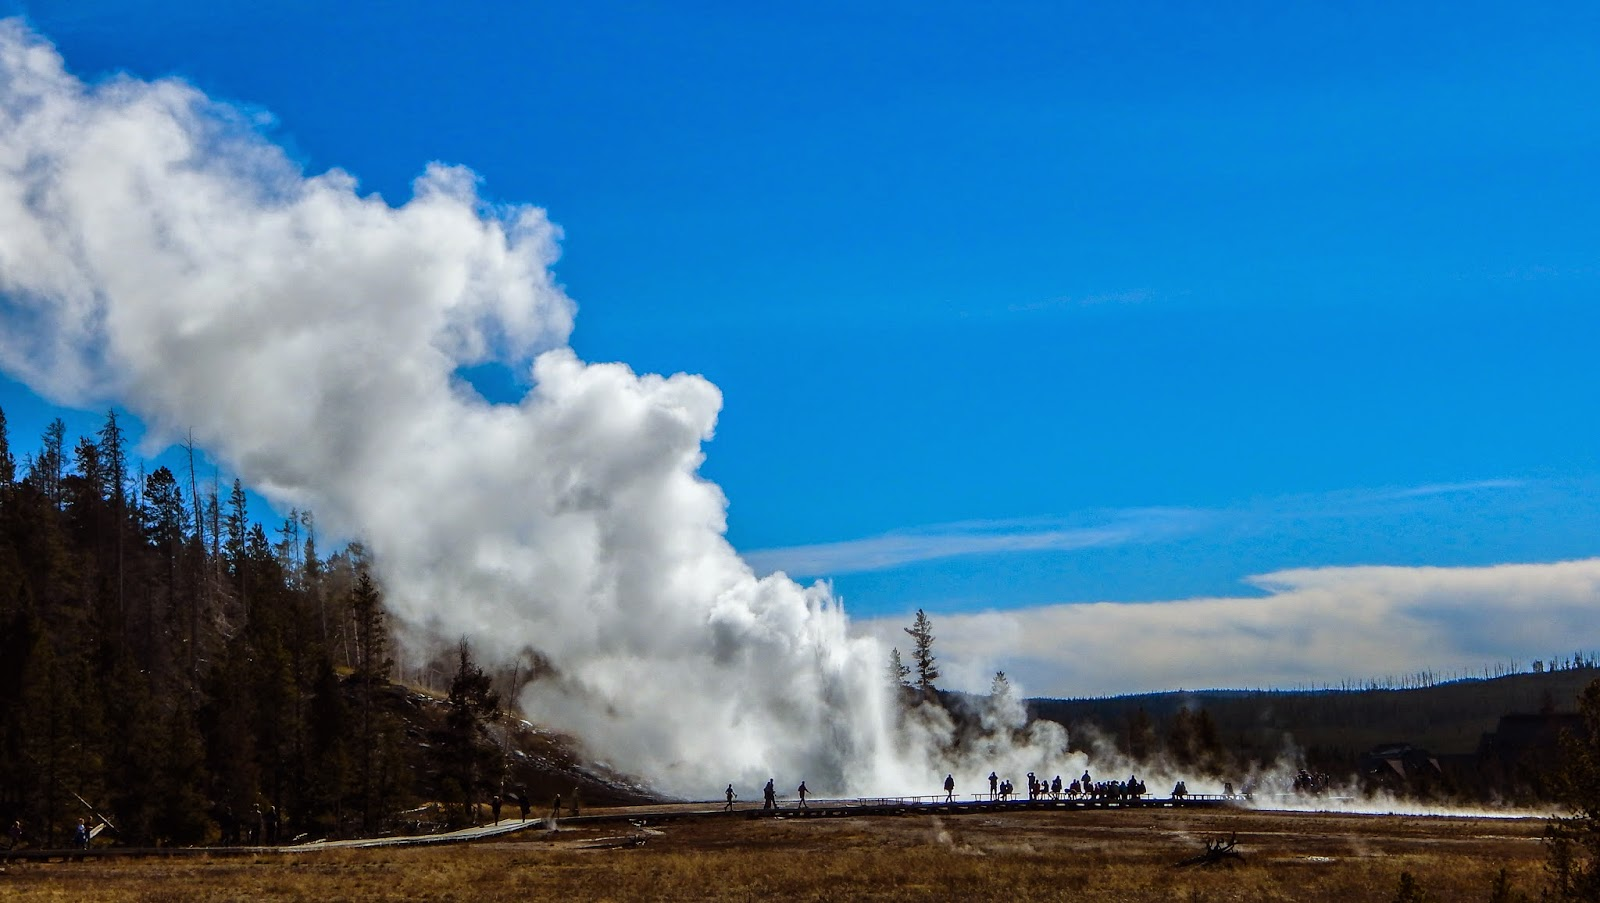 Name watching the geyser